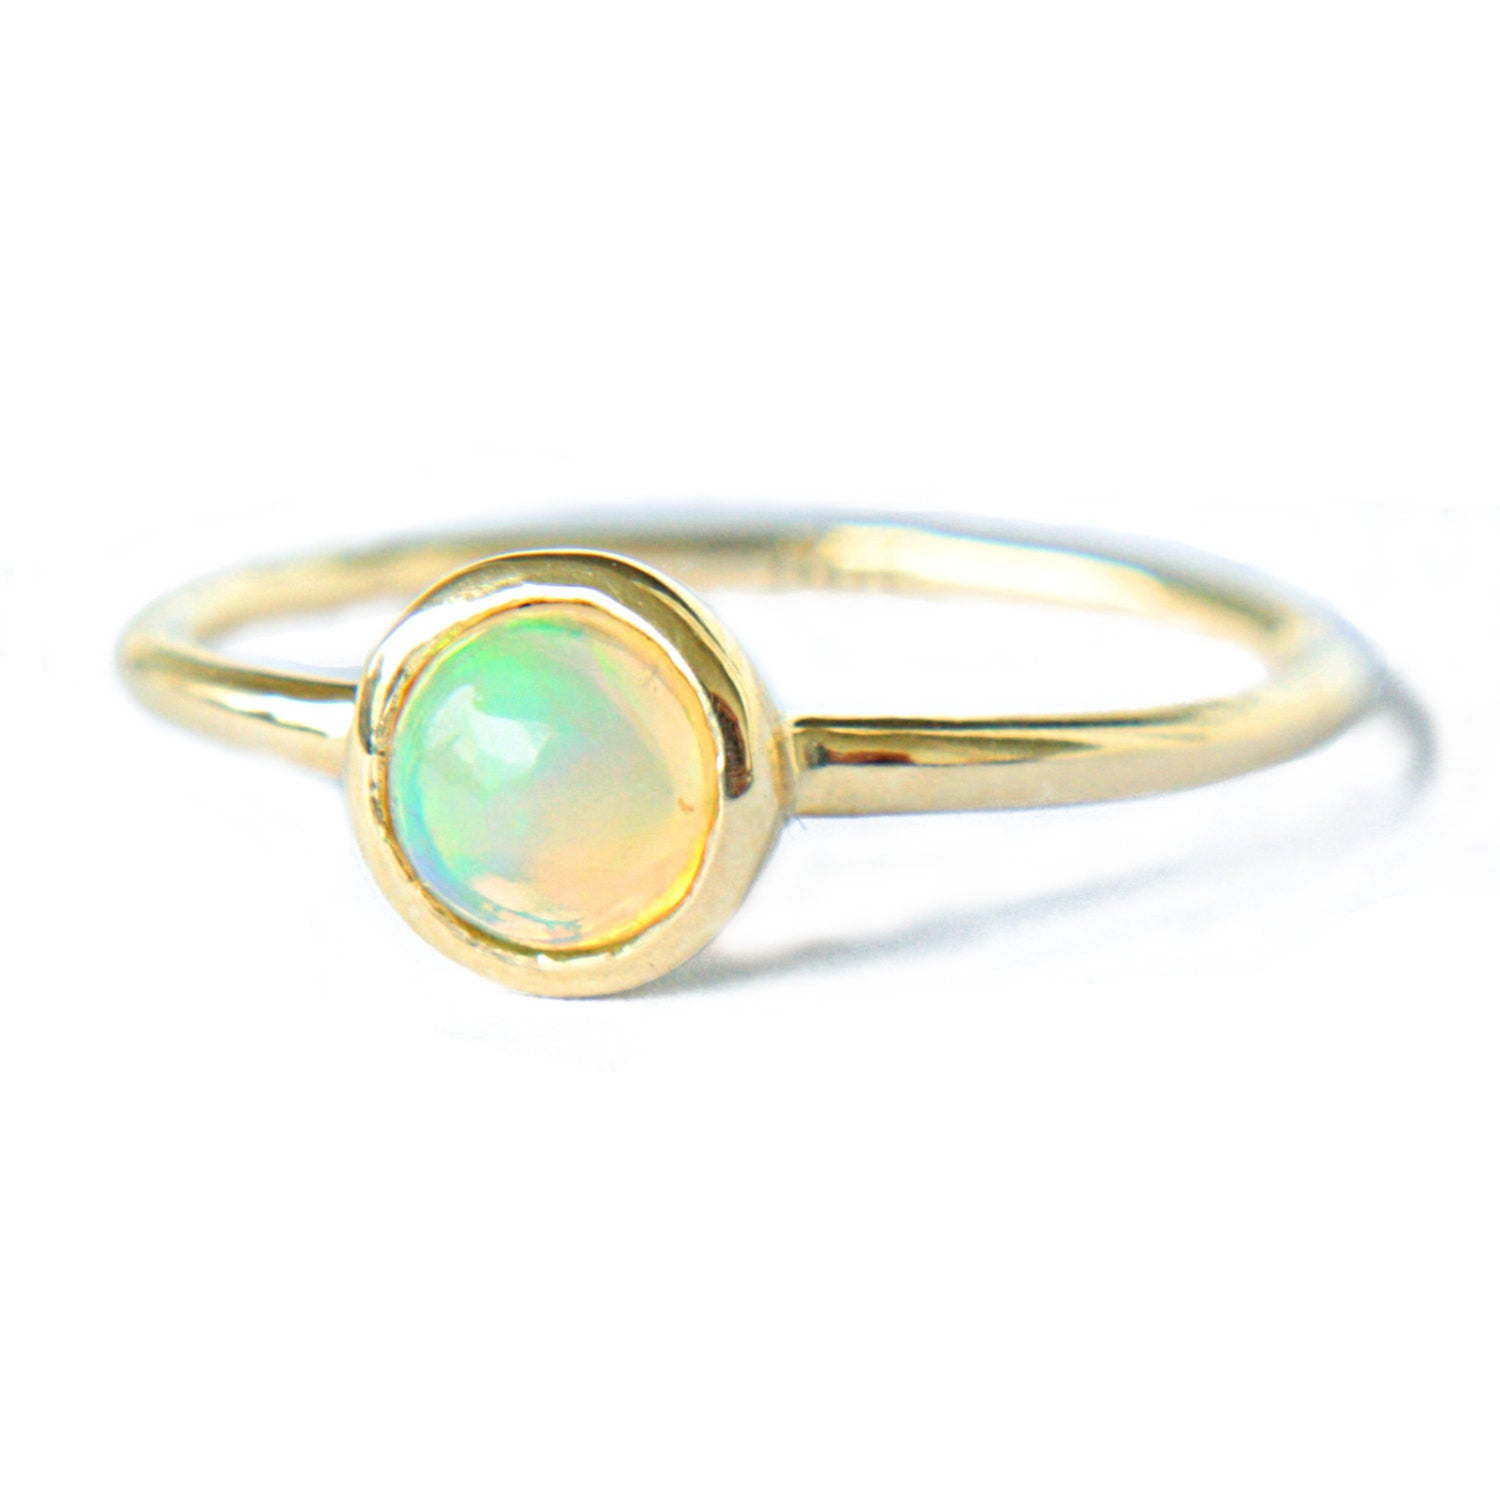 Opal 14k Gold Ring - Manari Design